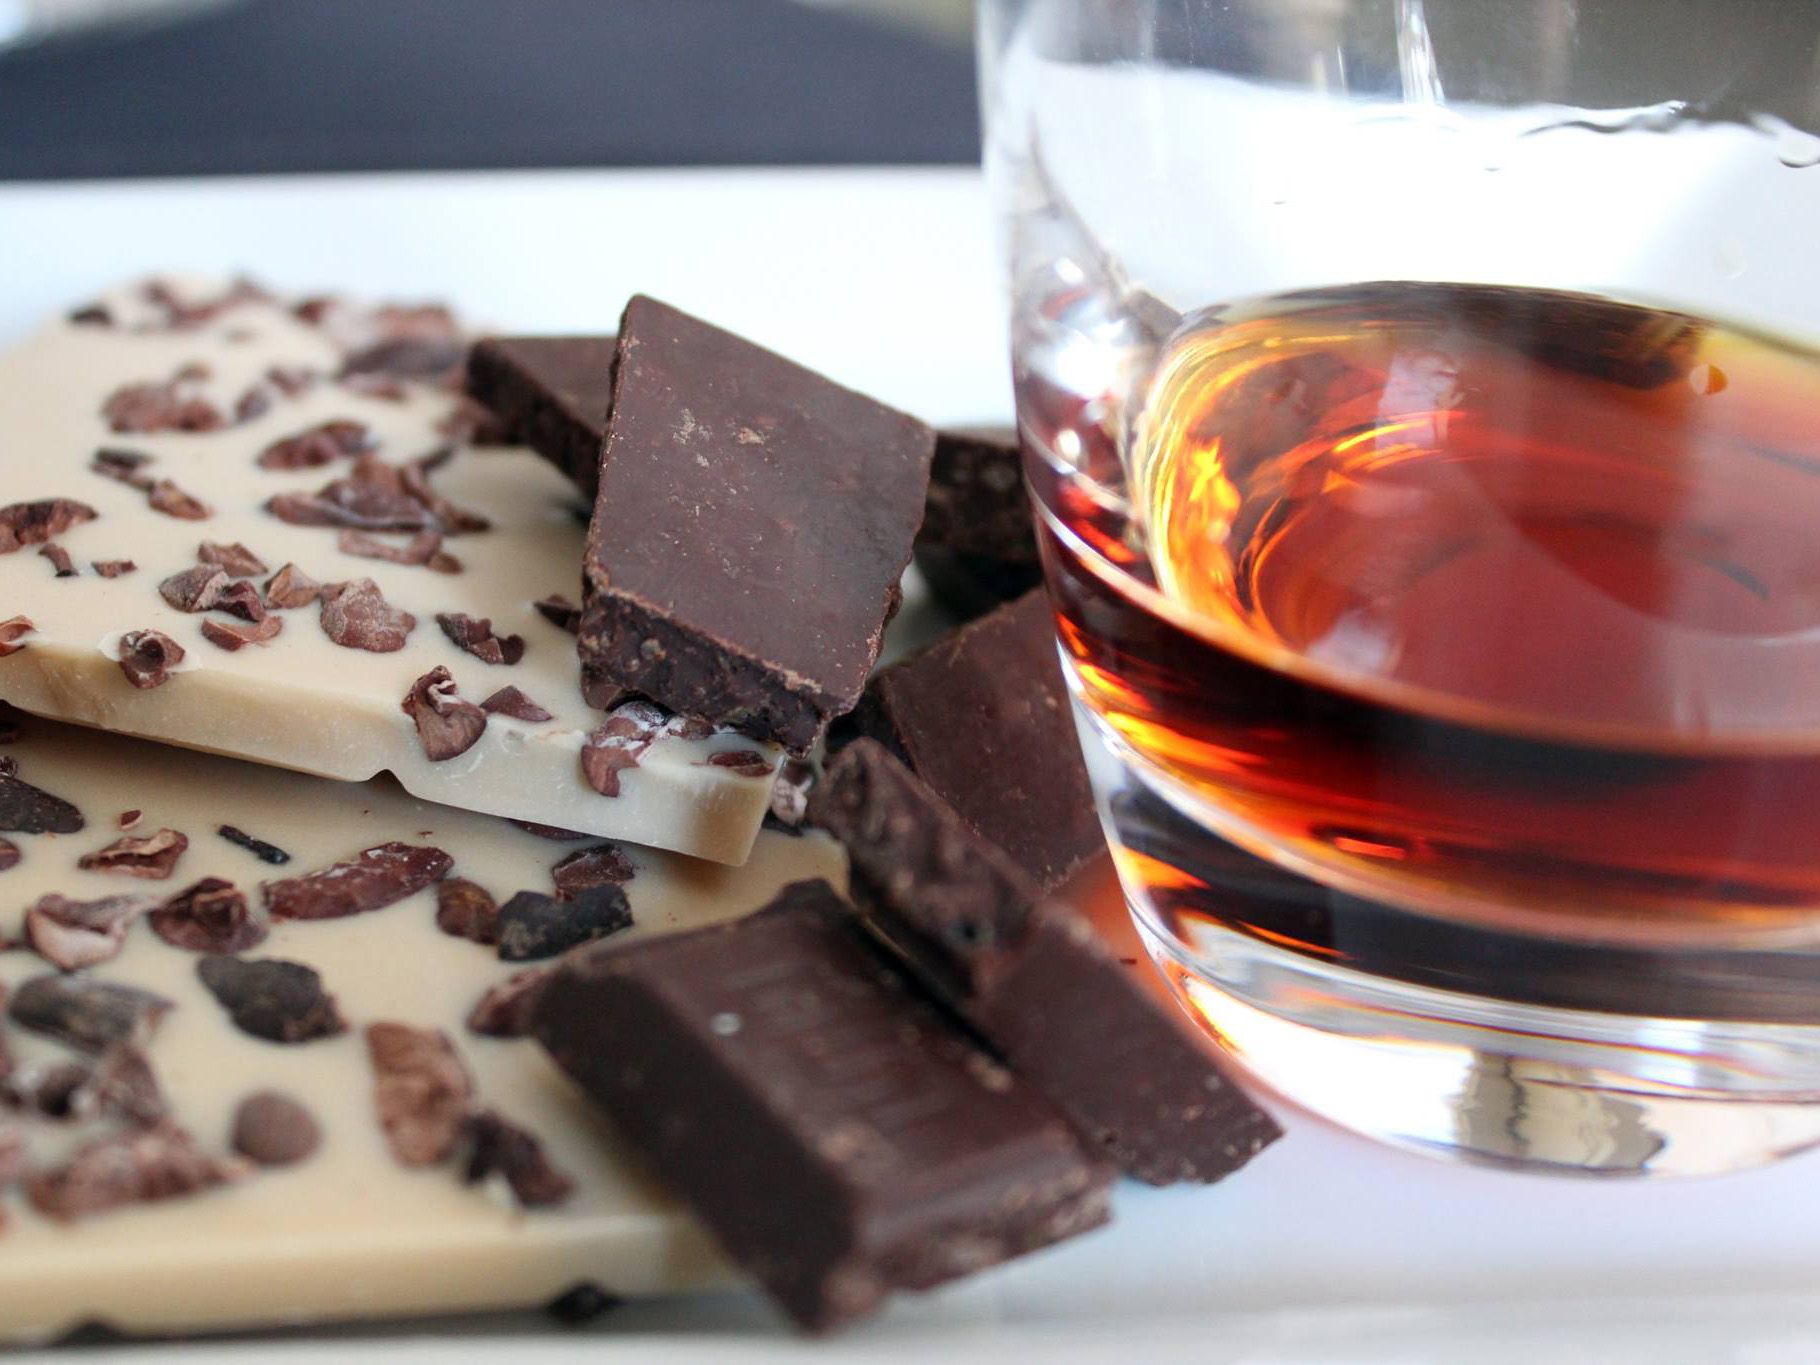 Zingerman's Deli Whiskey & Chocolates Tasting